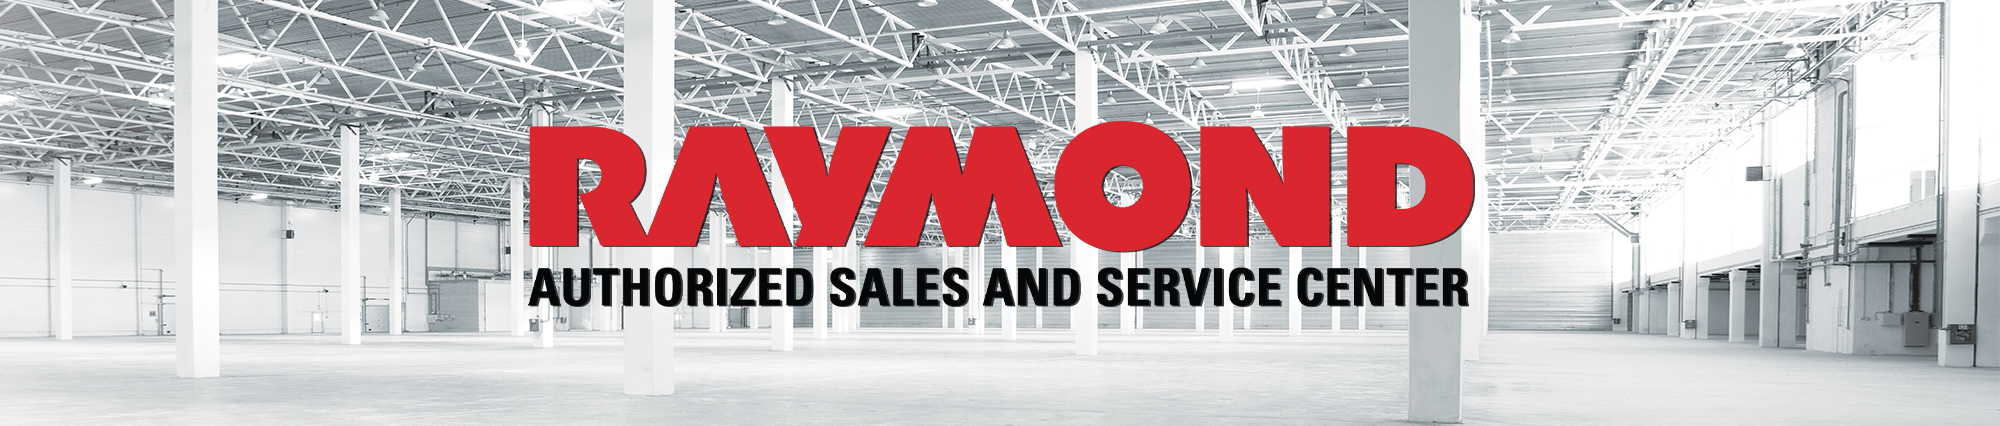 Pengate Handling Systems of Albany, New York: a Raymond Authorized Sales and Service Center